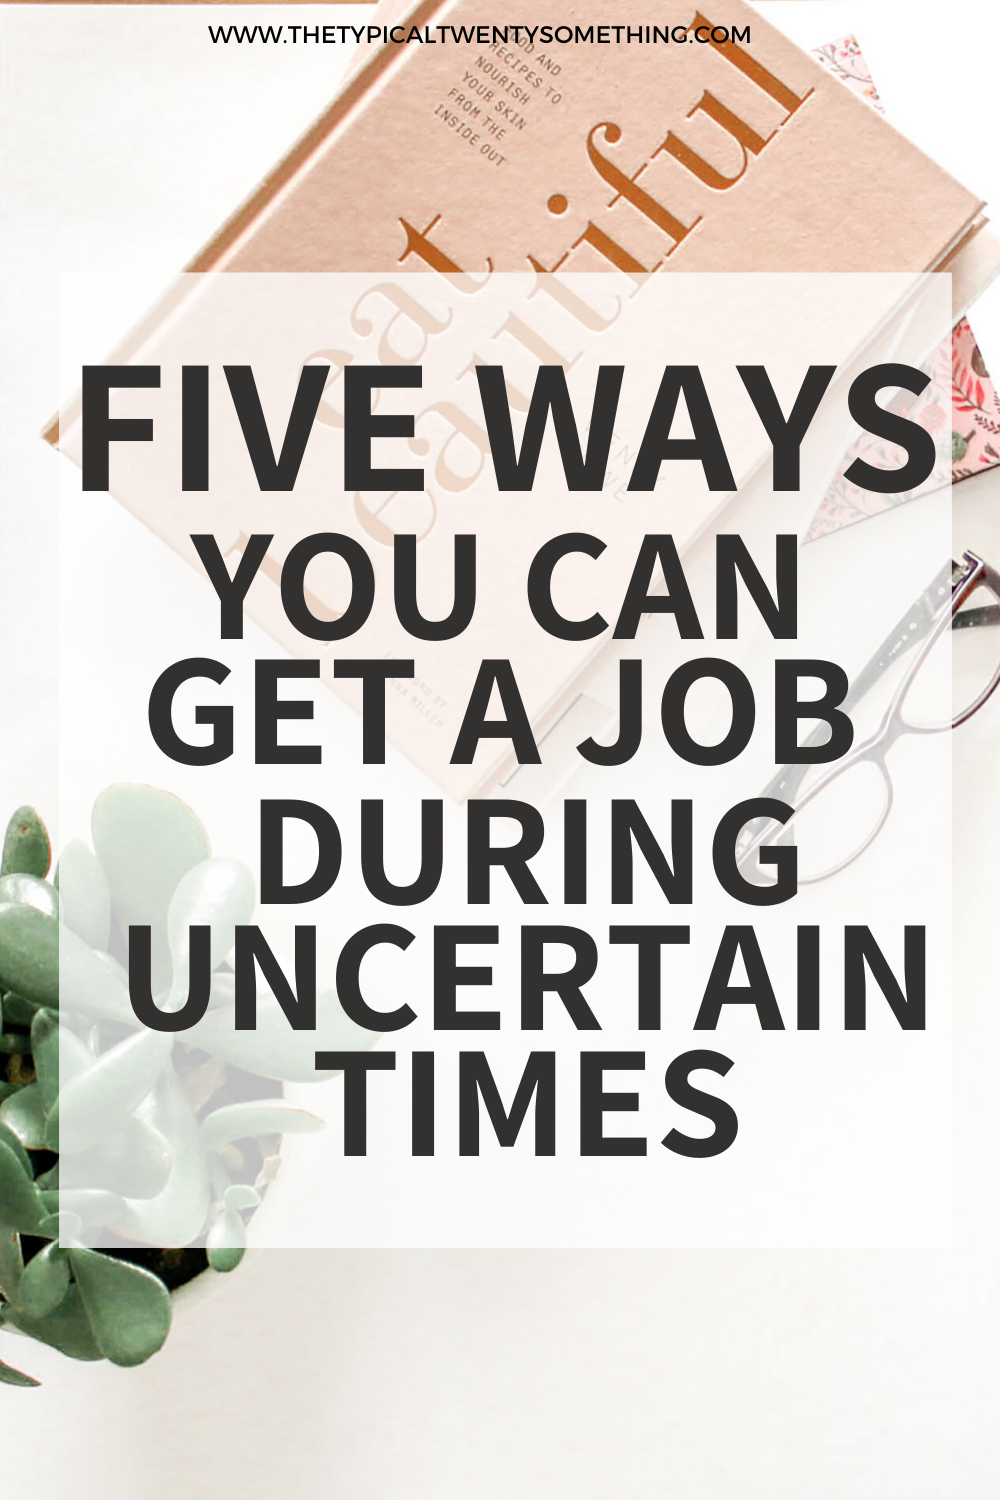 What to do if you are recently unemployed, laid off work quotes, laid off, career advice, getting a job tips, getting hired